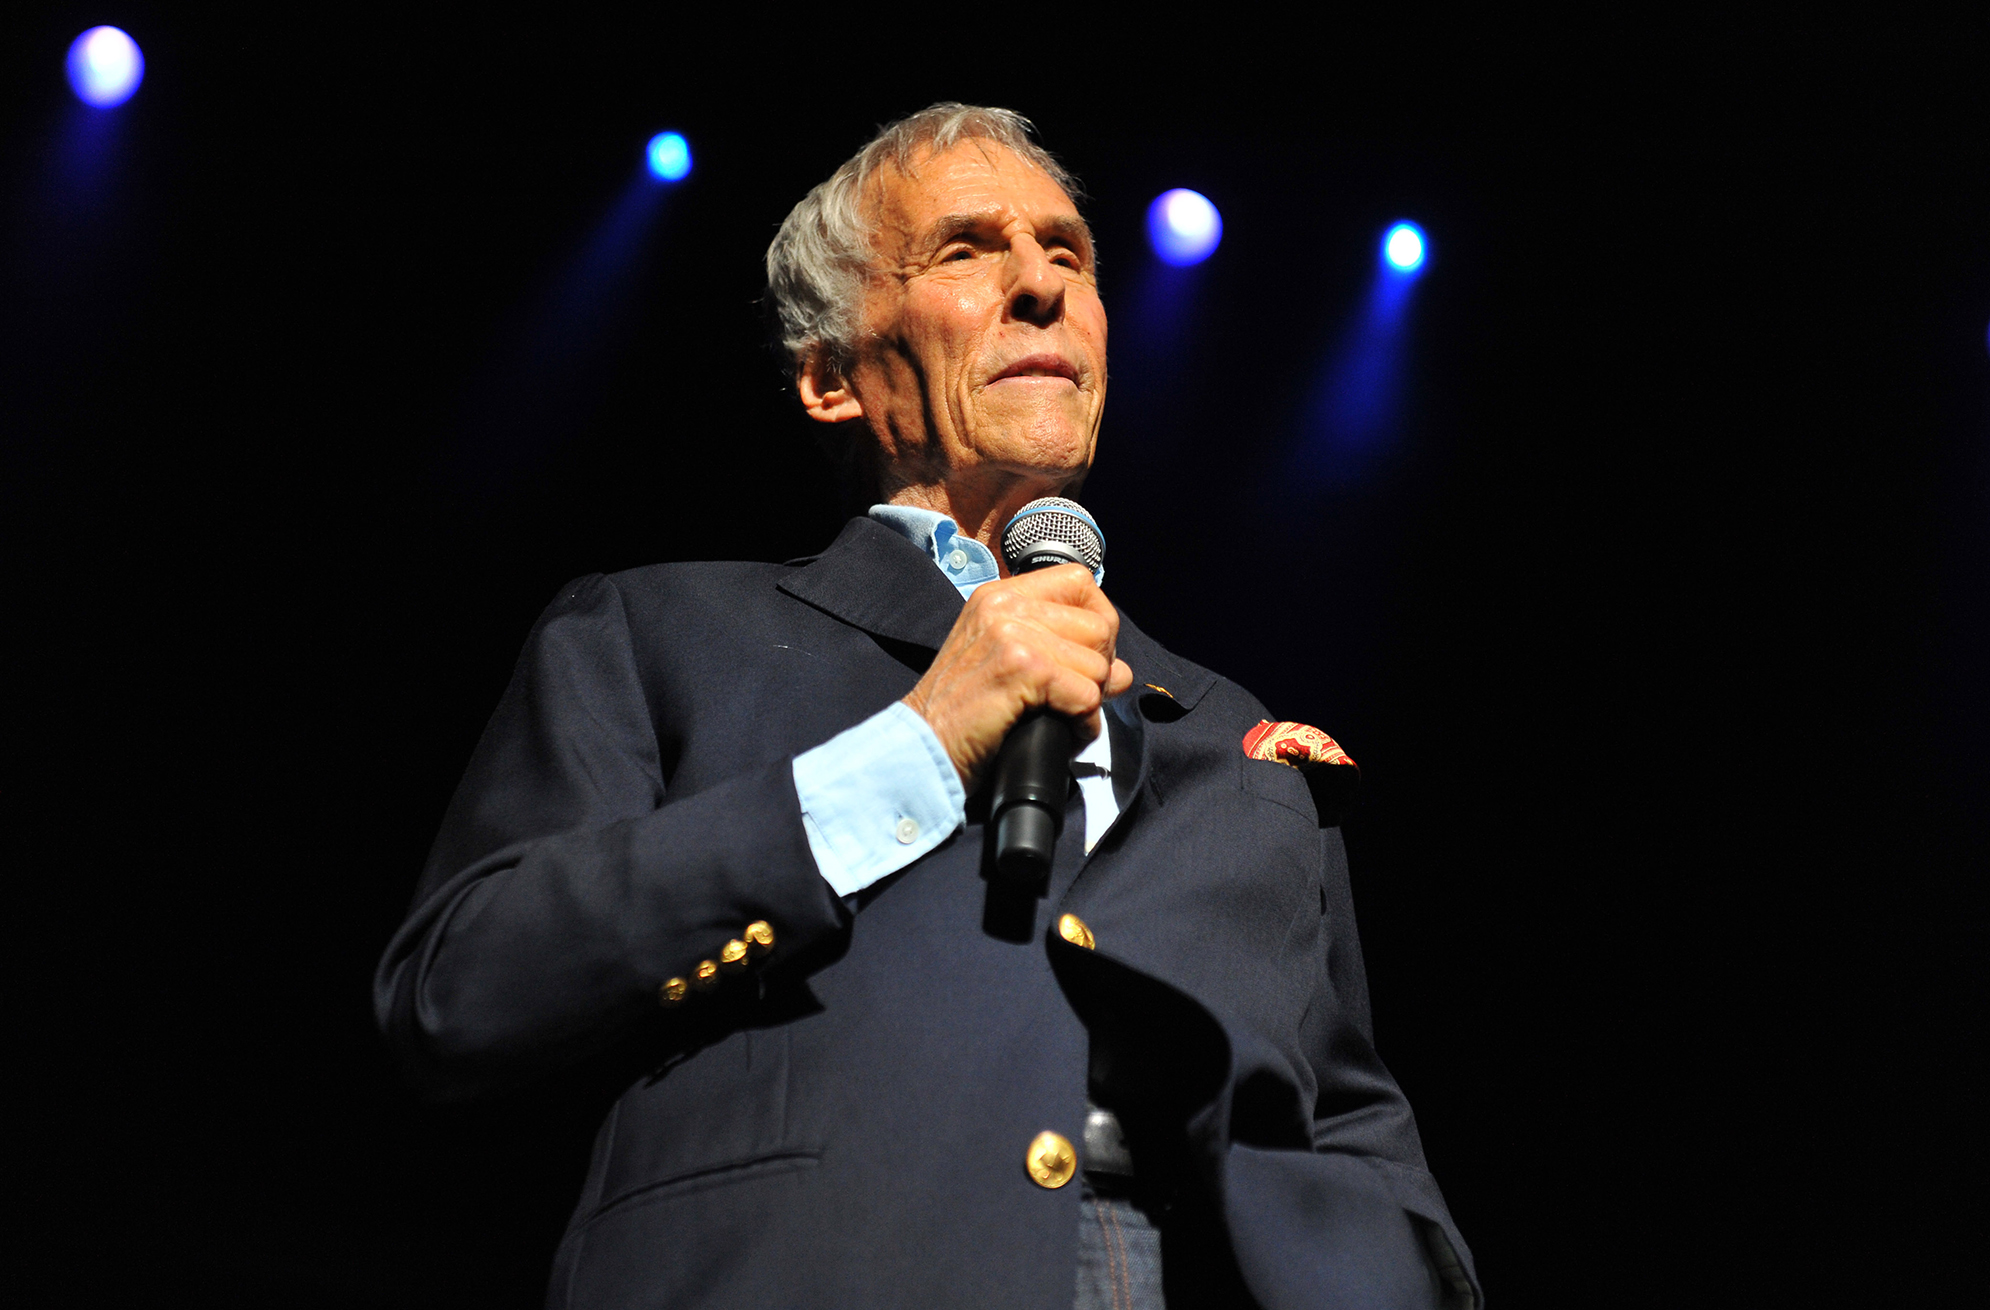 Burt Bacharach (C Brandon/Redferns via Getty Images)